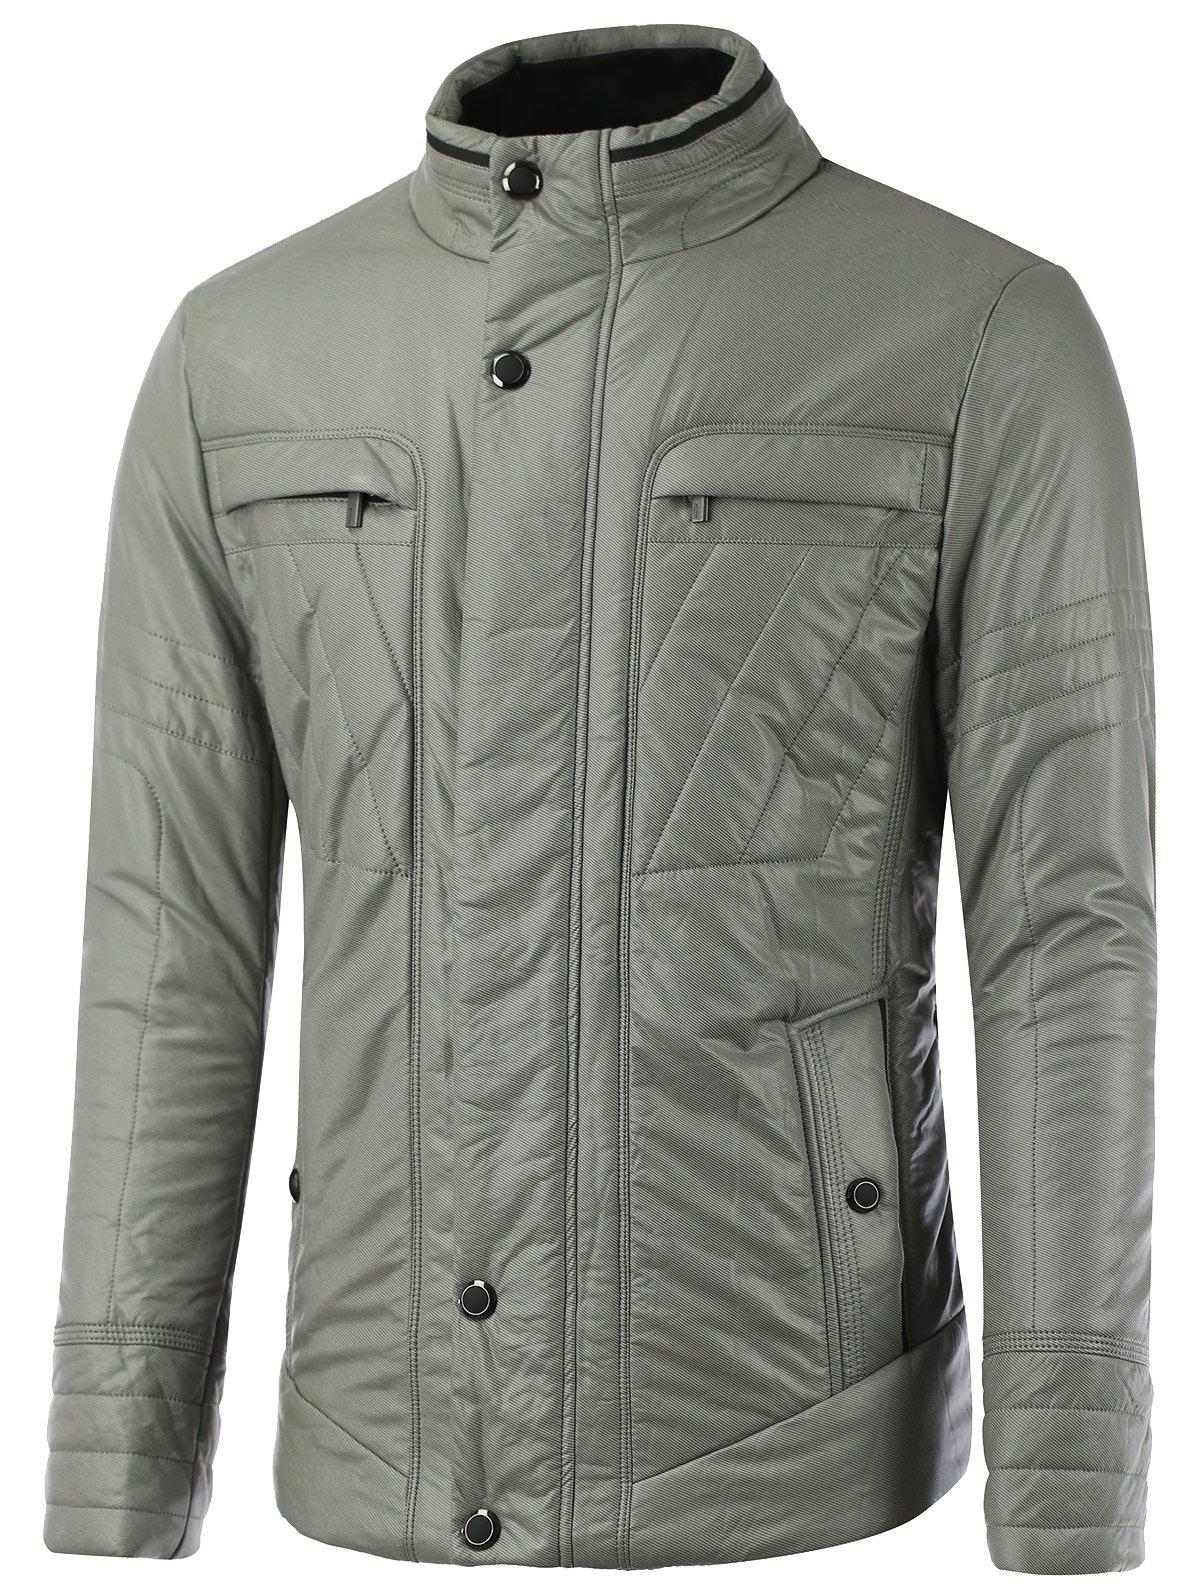 Buckled Pocket Design Zippered Texture Padded Jacket - GRAY M